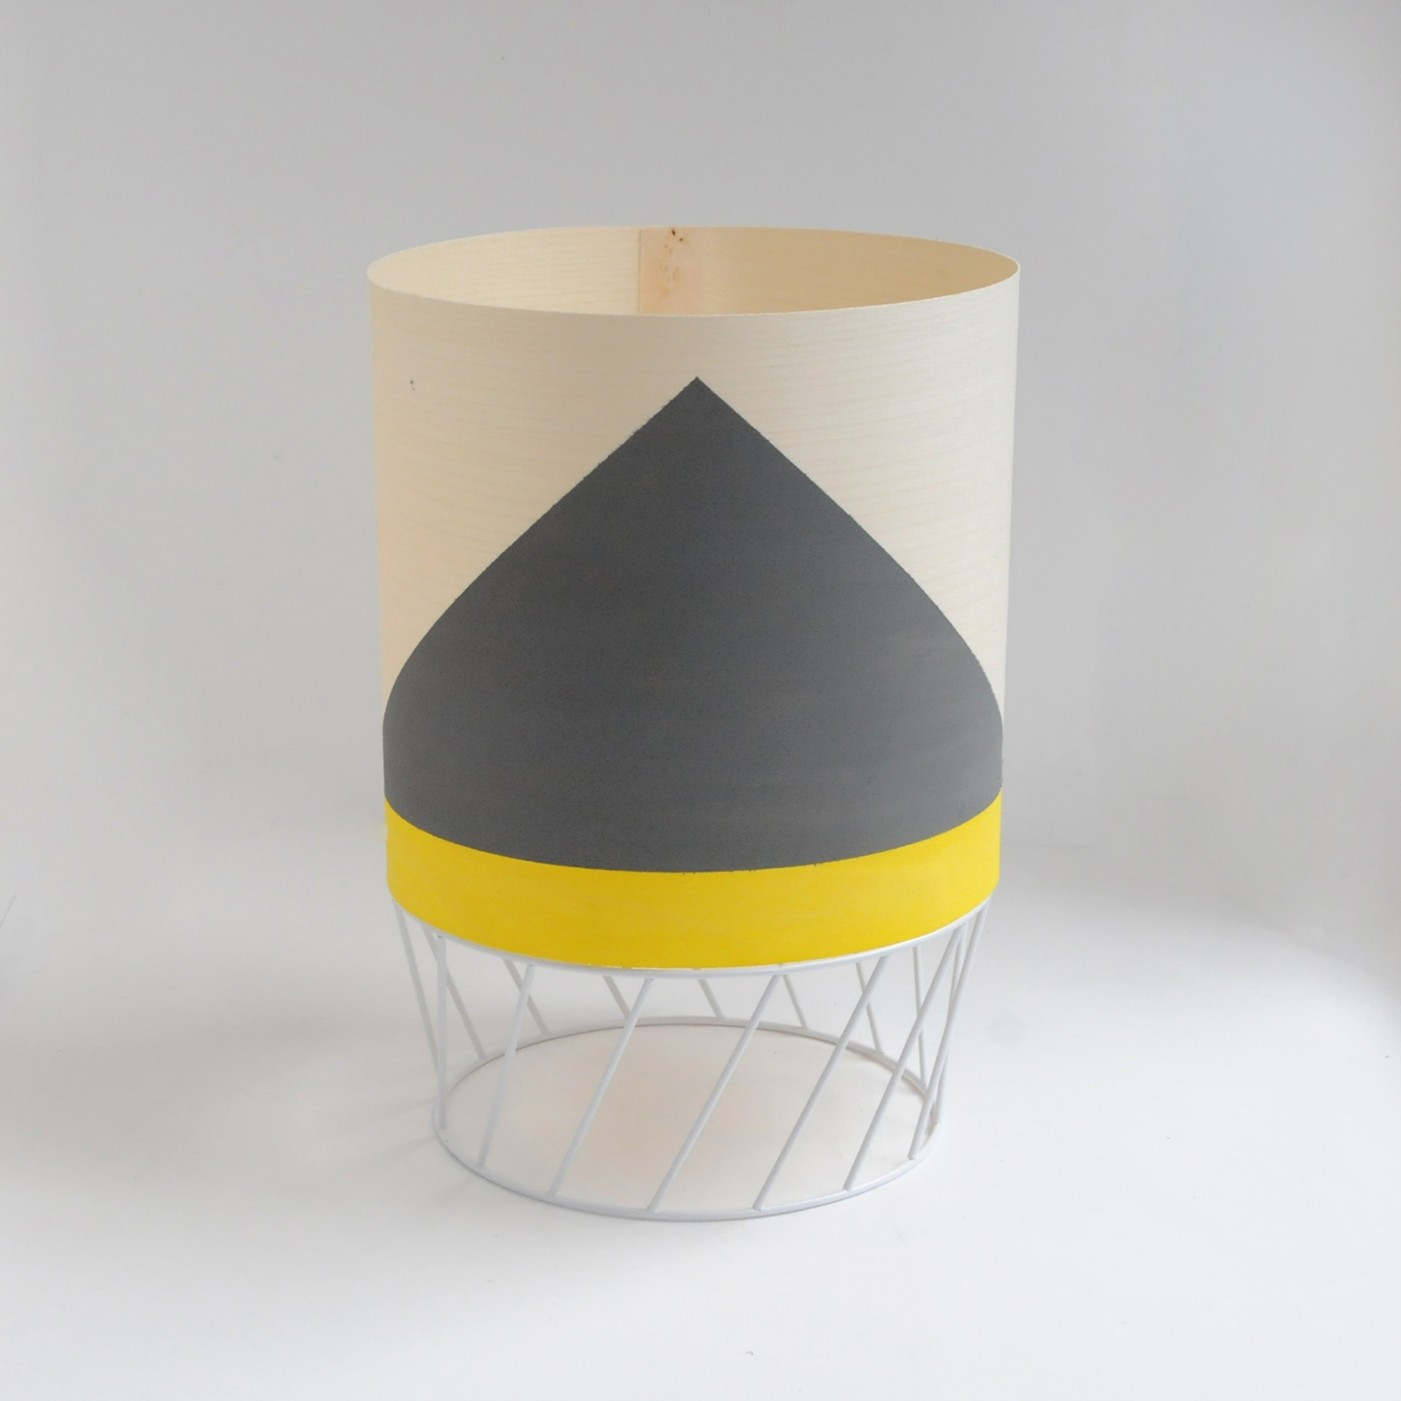 'Dowood' lamp in grey and yellow